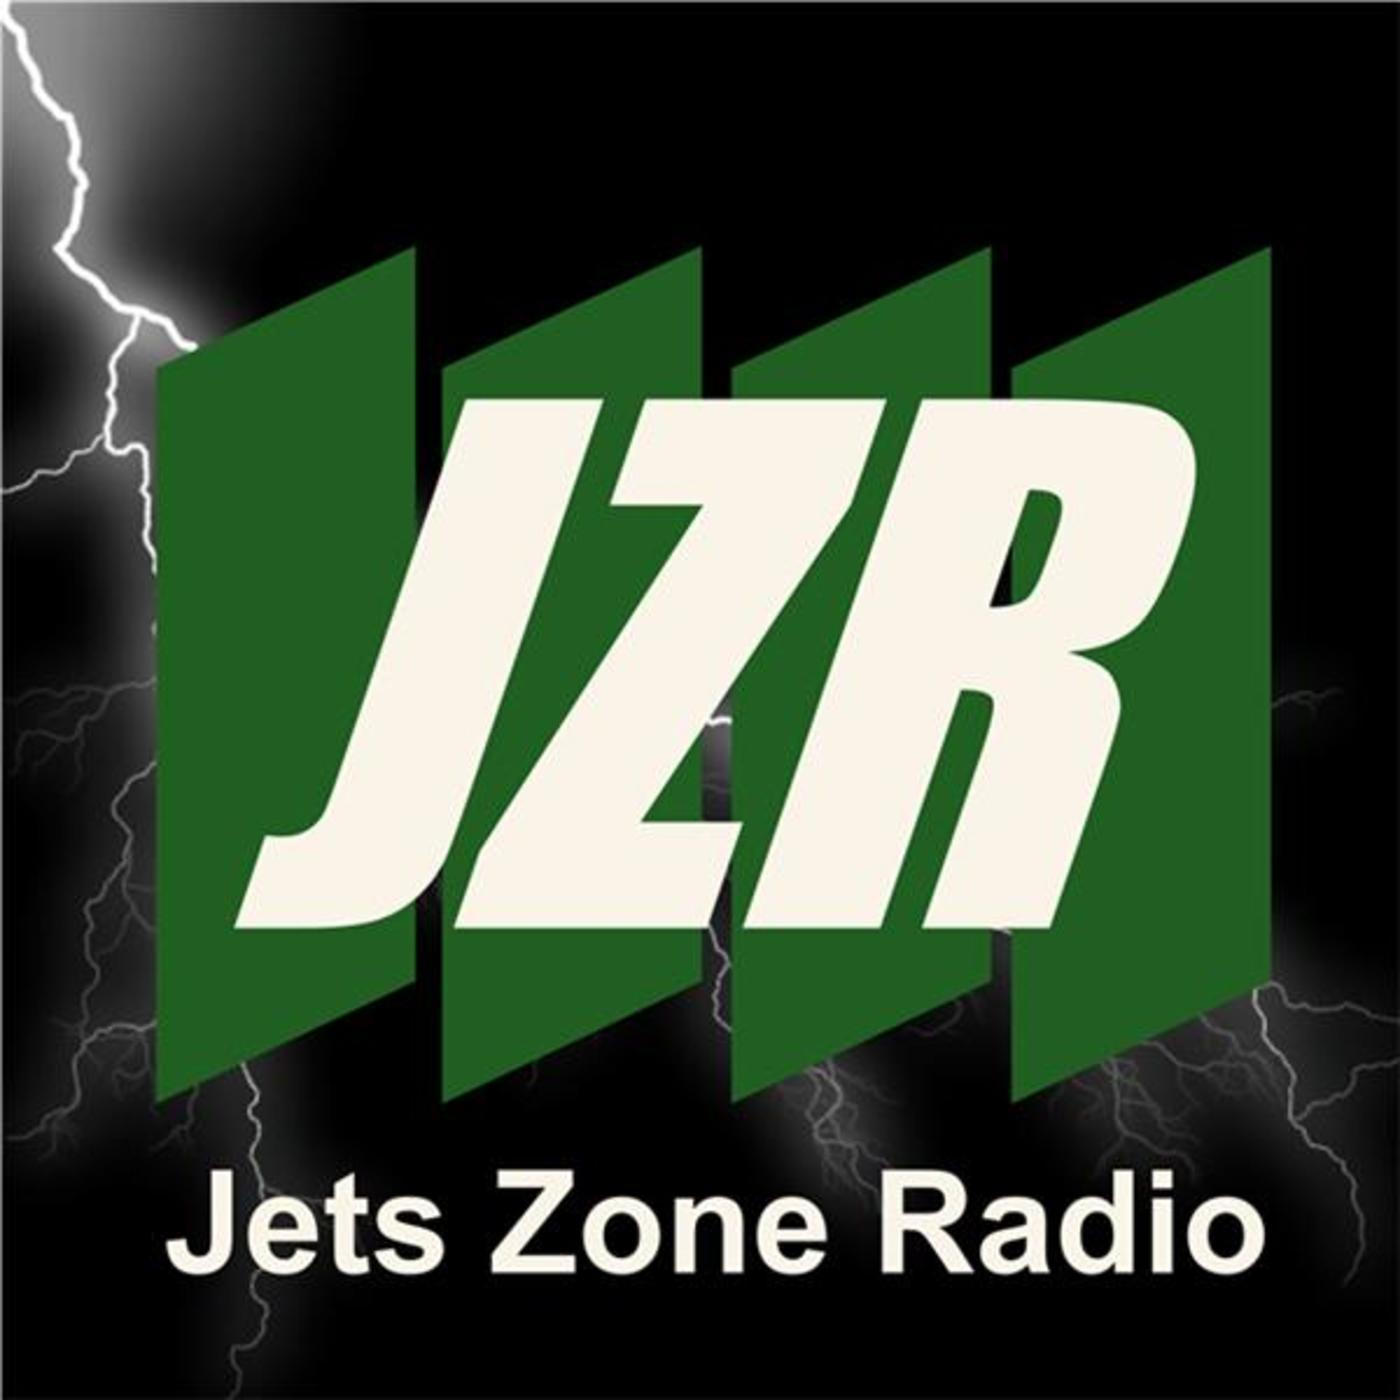 Jets Zone Radio™